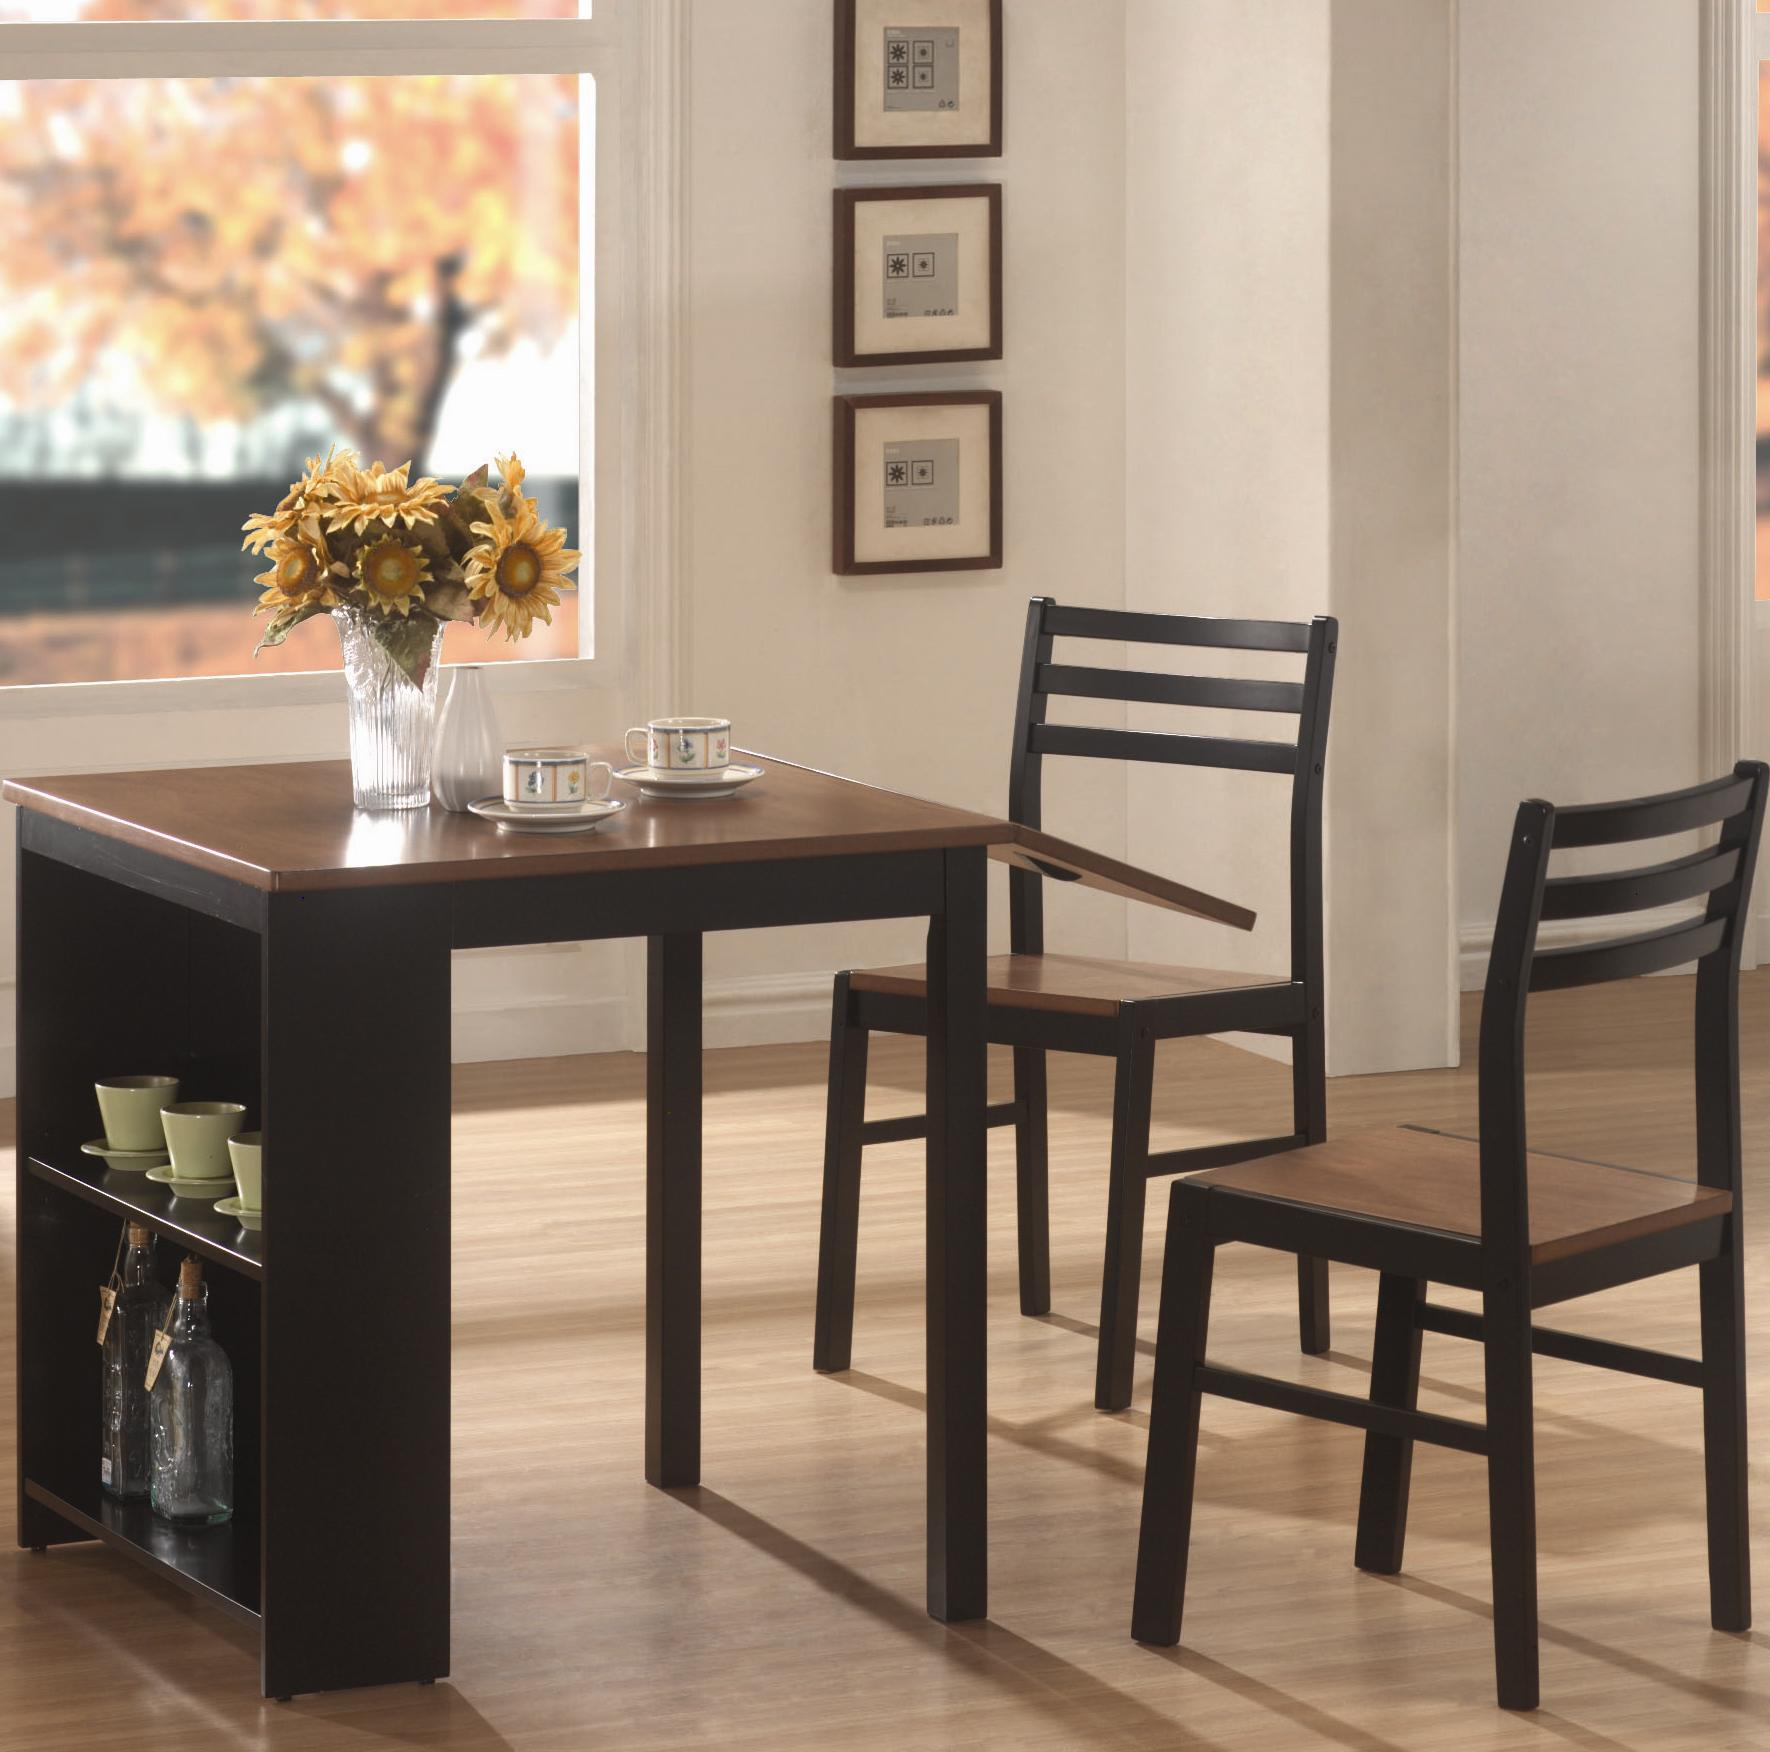 Breakfast Chairs Persia Breakfast Table W 2 Side Chairs By Coaster At Dunk Bright Furniture